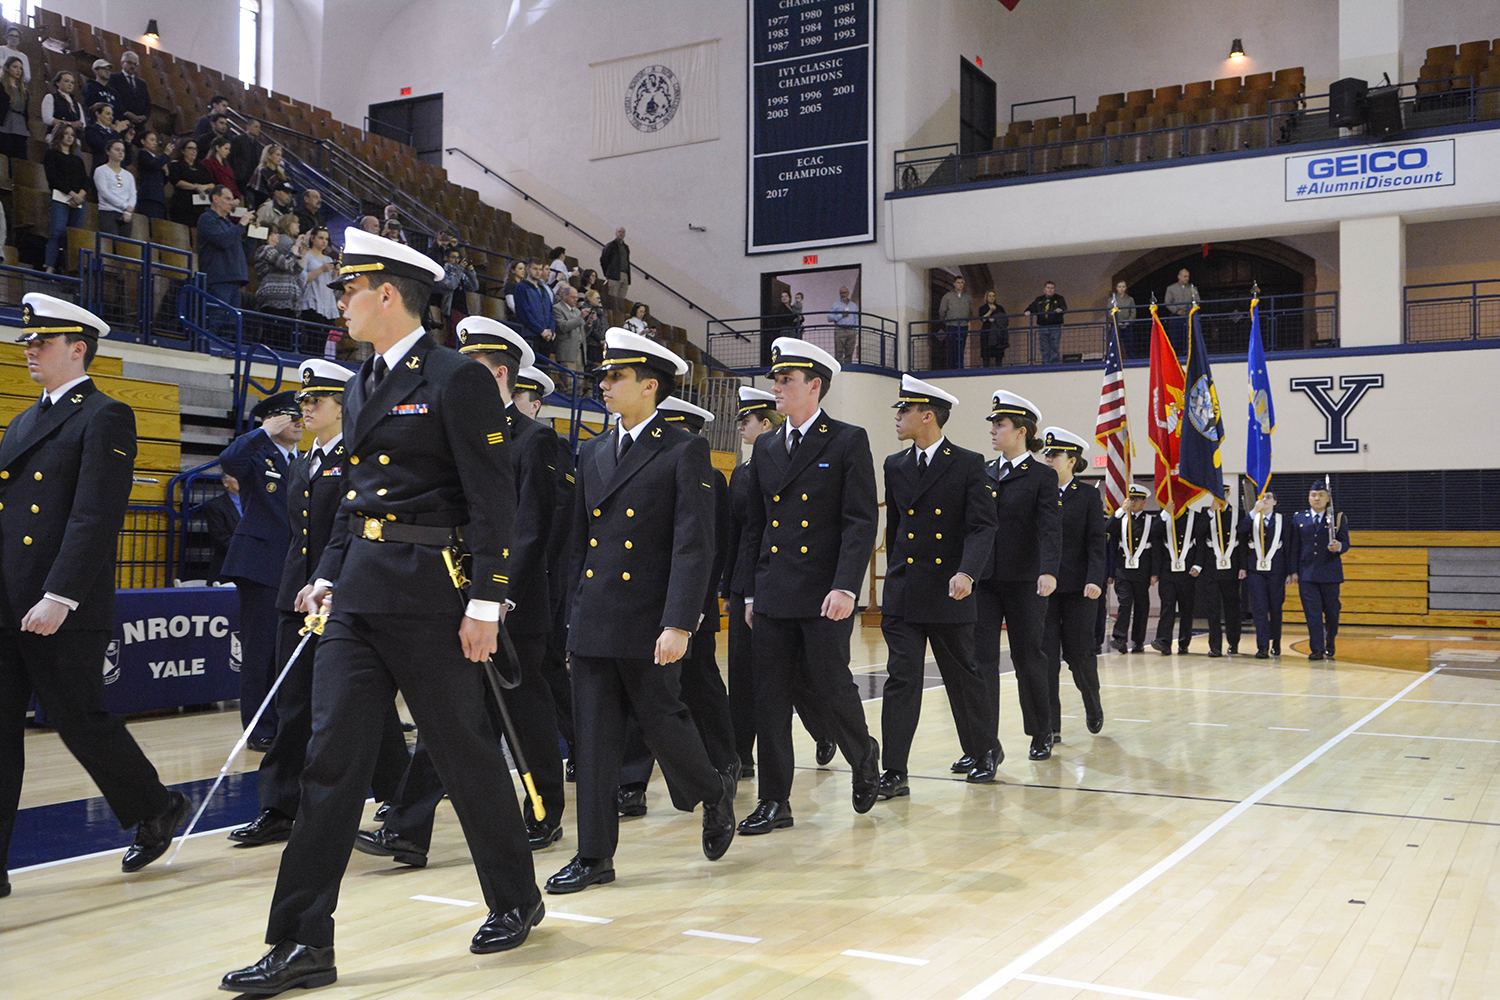 ROTC students march in formation.